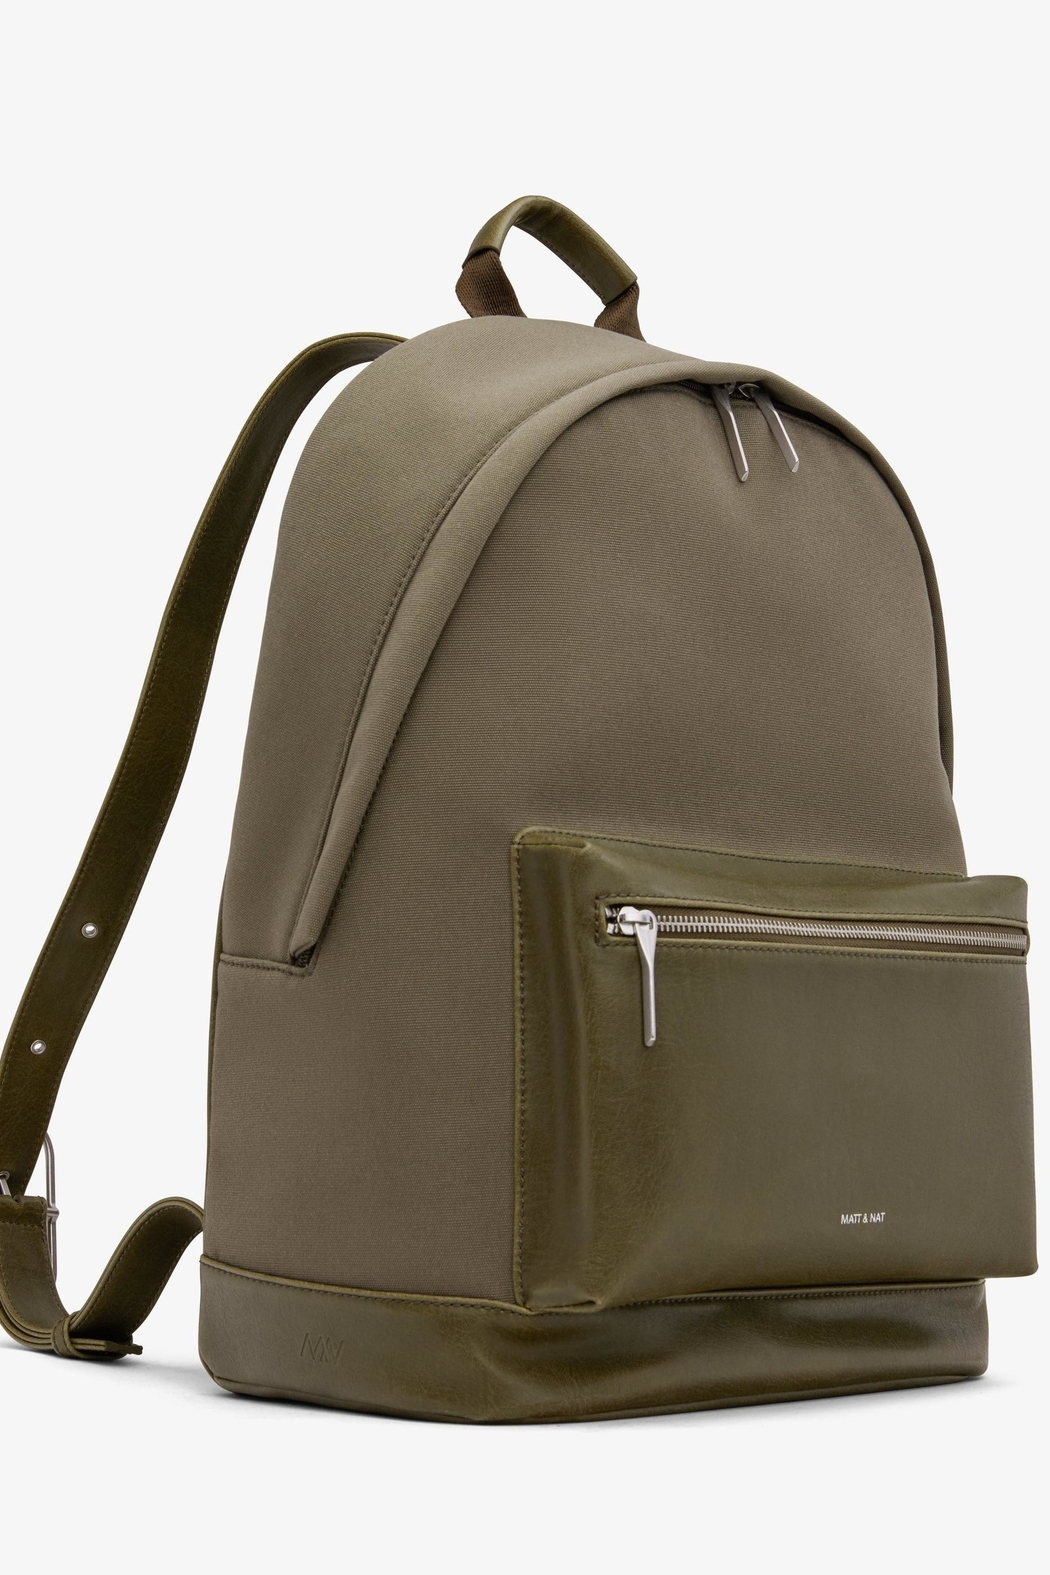 Matt & Nat Bali-Lg Canvas Backpack - Front Full Image